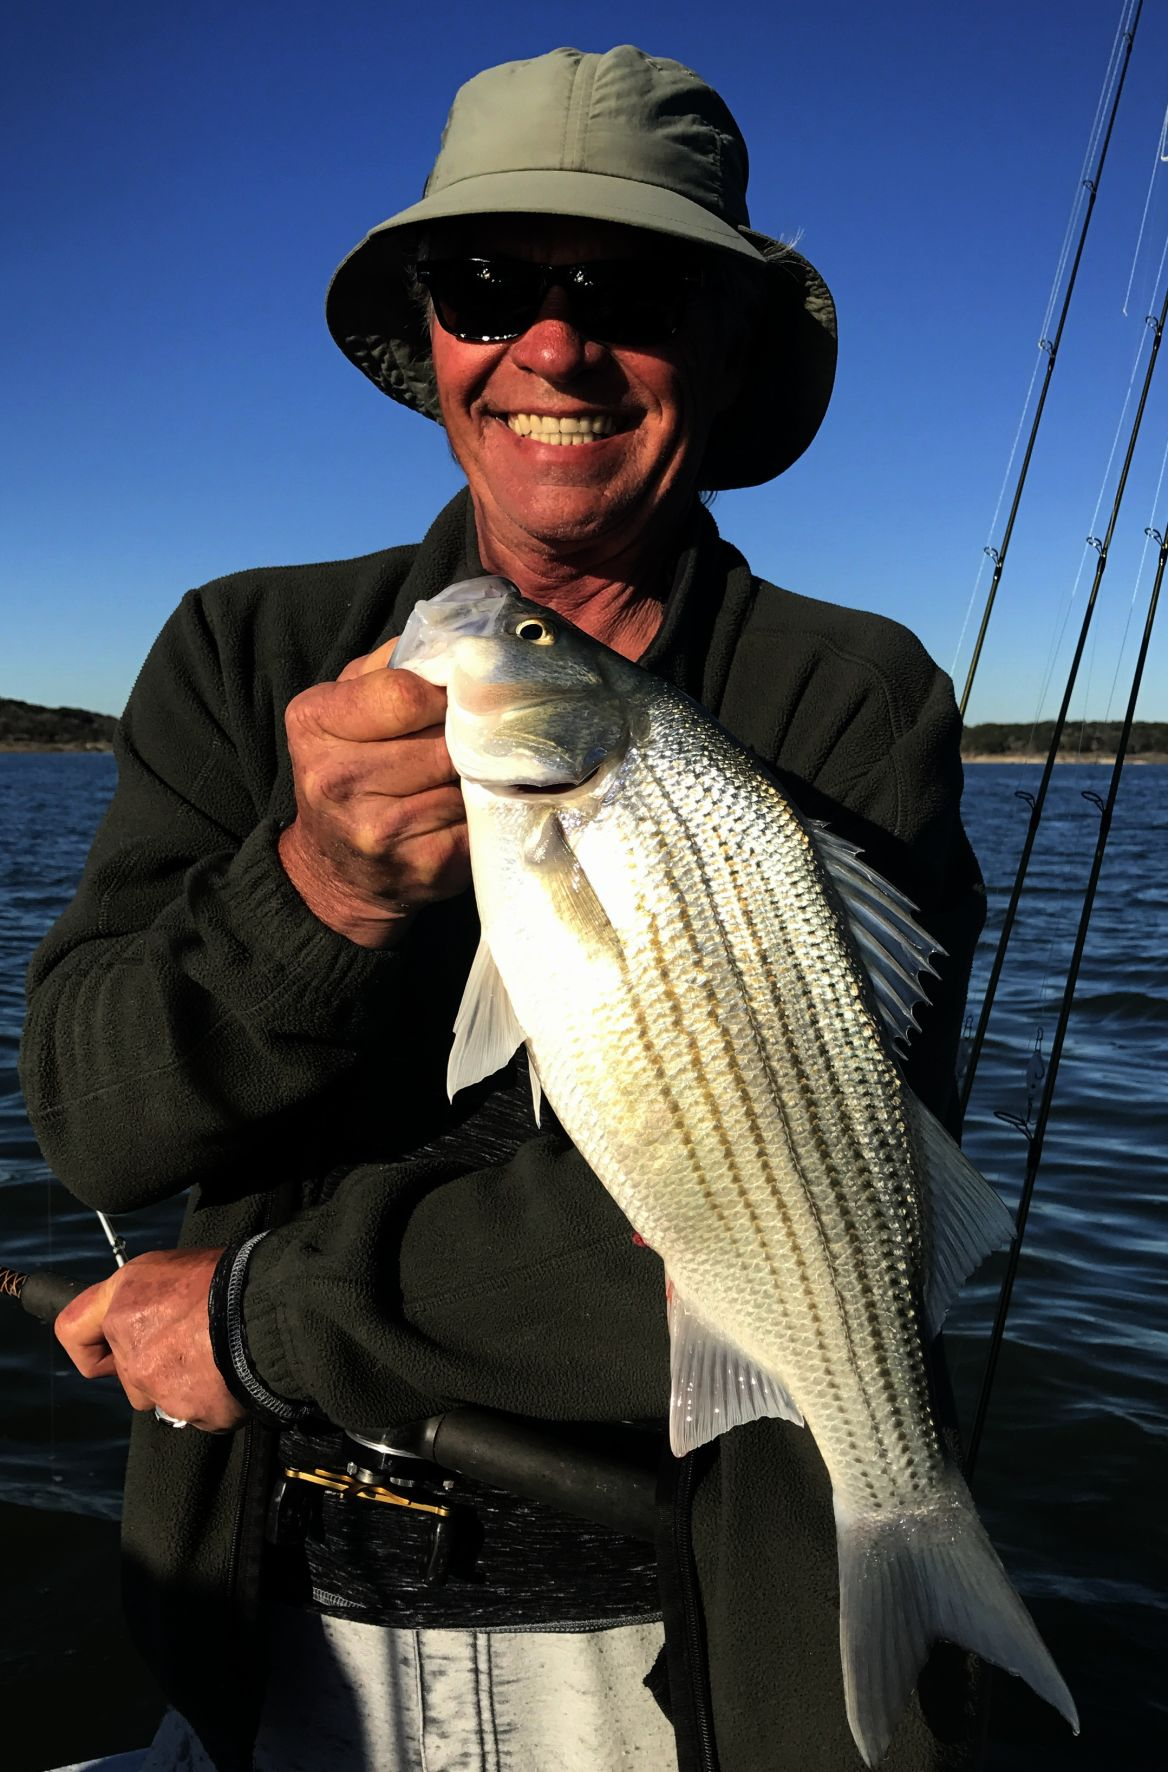 Bob Maindelle Guide Lines Feb. 26